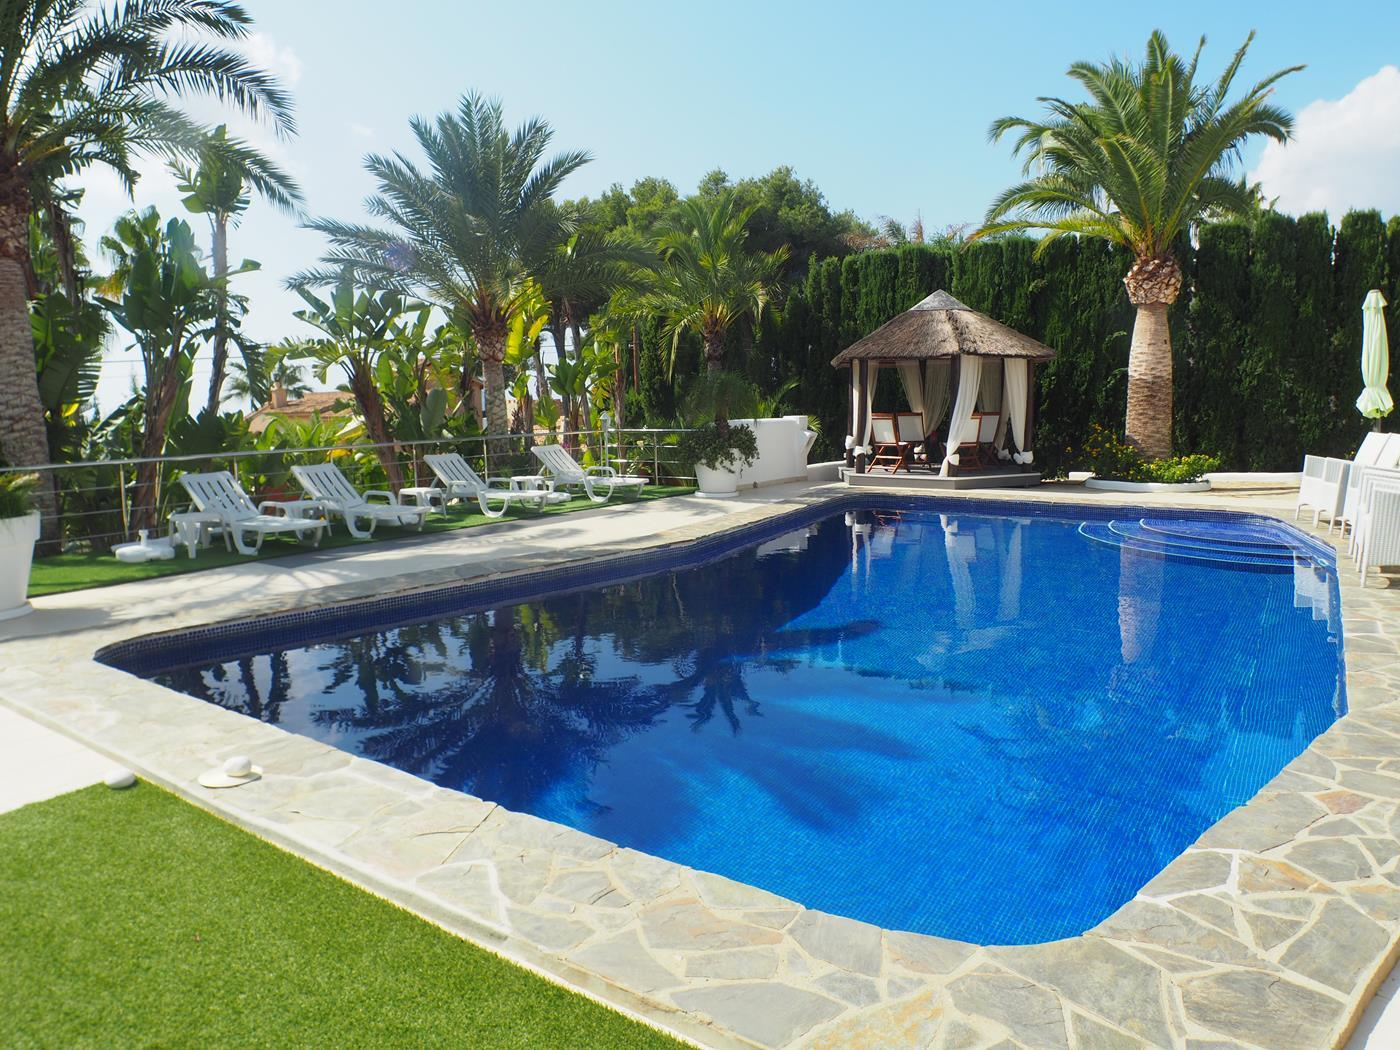 Fotogallerij - 2 - Exceptional homes in the Costa Blanca. Unparalleled Service. Exceptional properties in the Costa Blanca